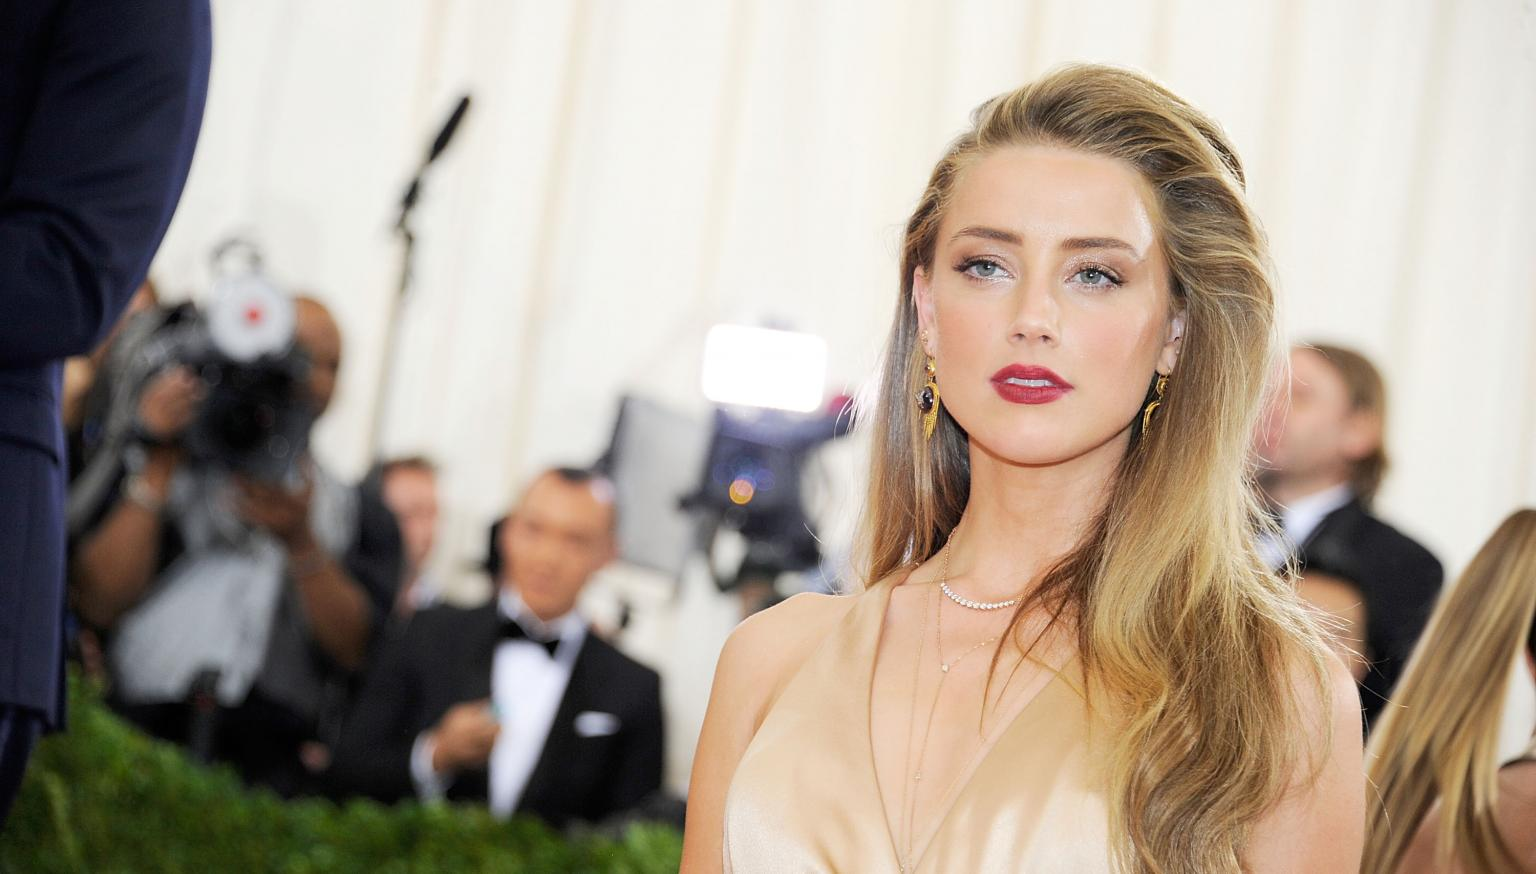 Amber Heard arrested for domestic violence in 2009 | Nova 969